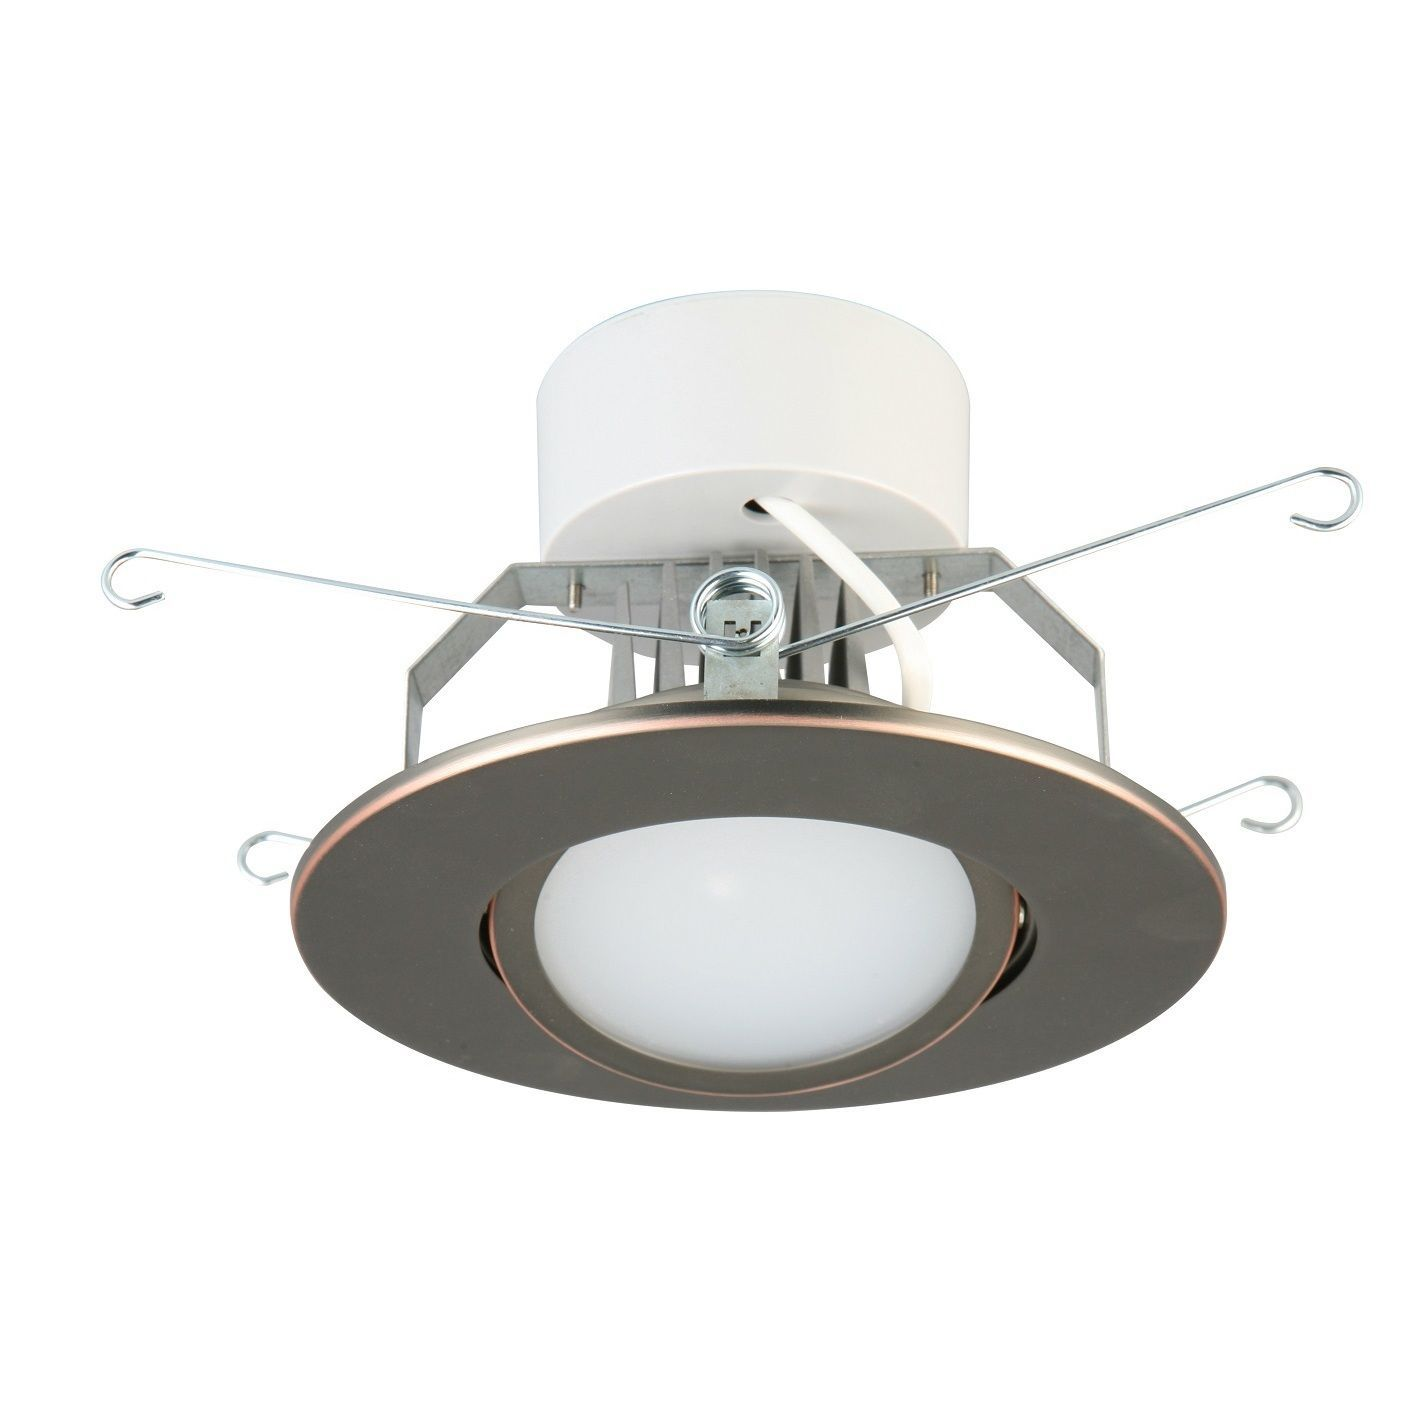 Lithonia Lighting Lithonia 5G1ORB LED M6 5 inch Oil Rubbed Bronze